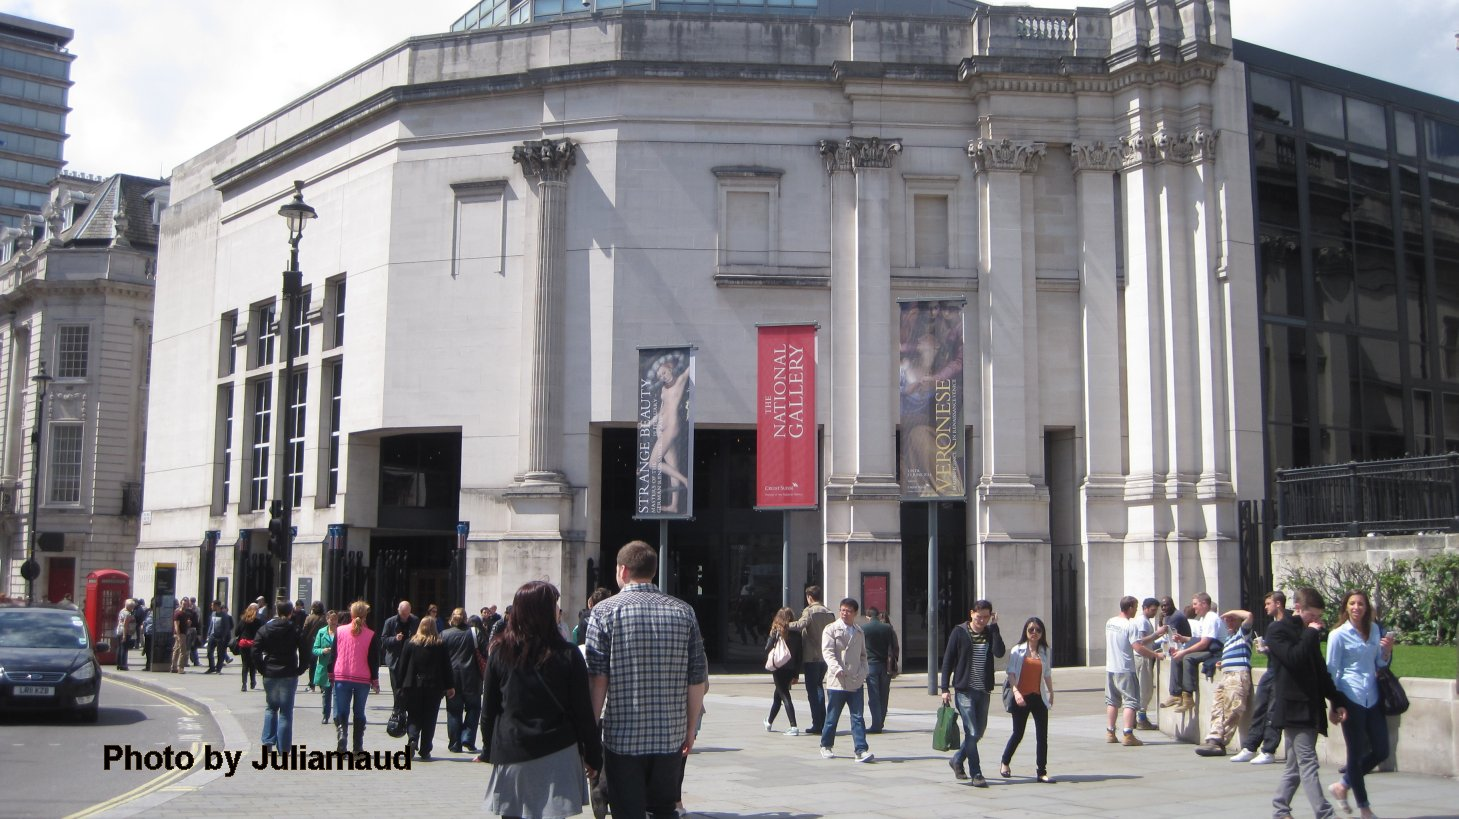 sainsbury wing of National Gallery